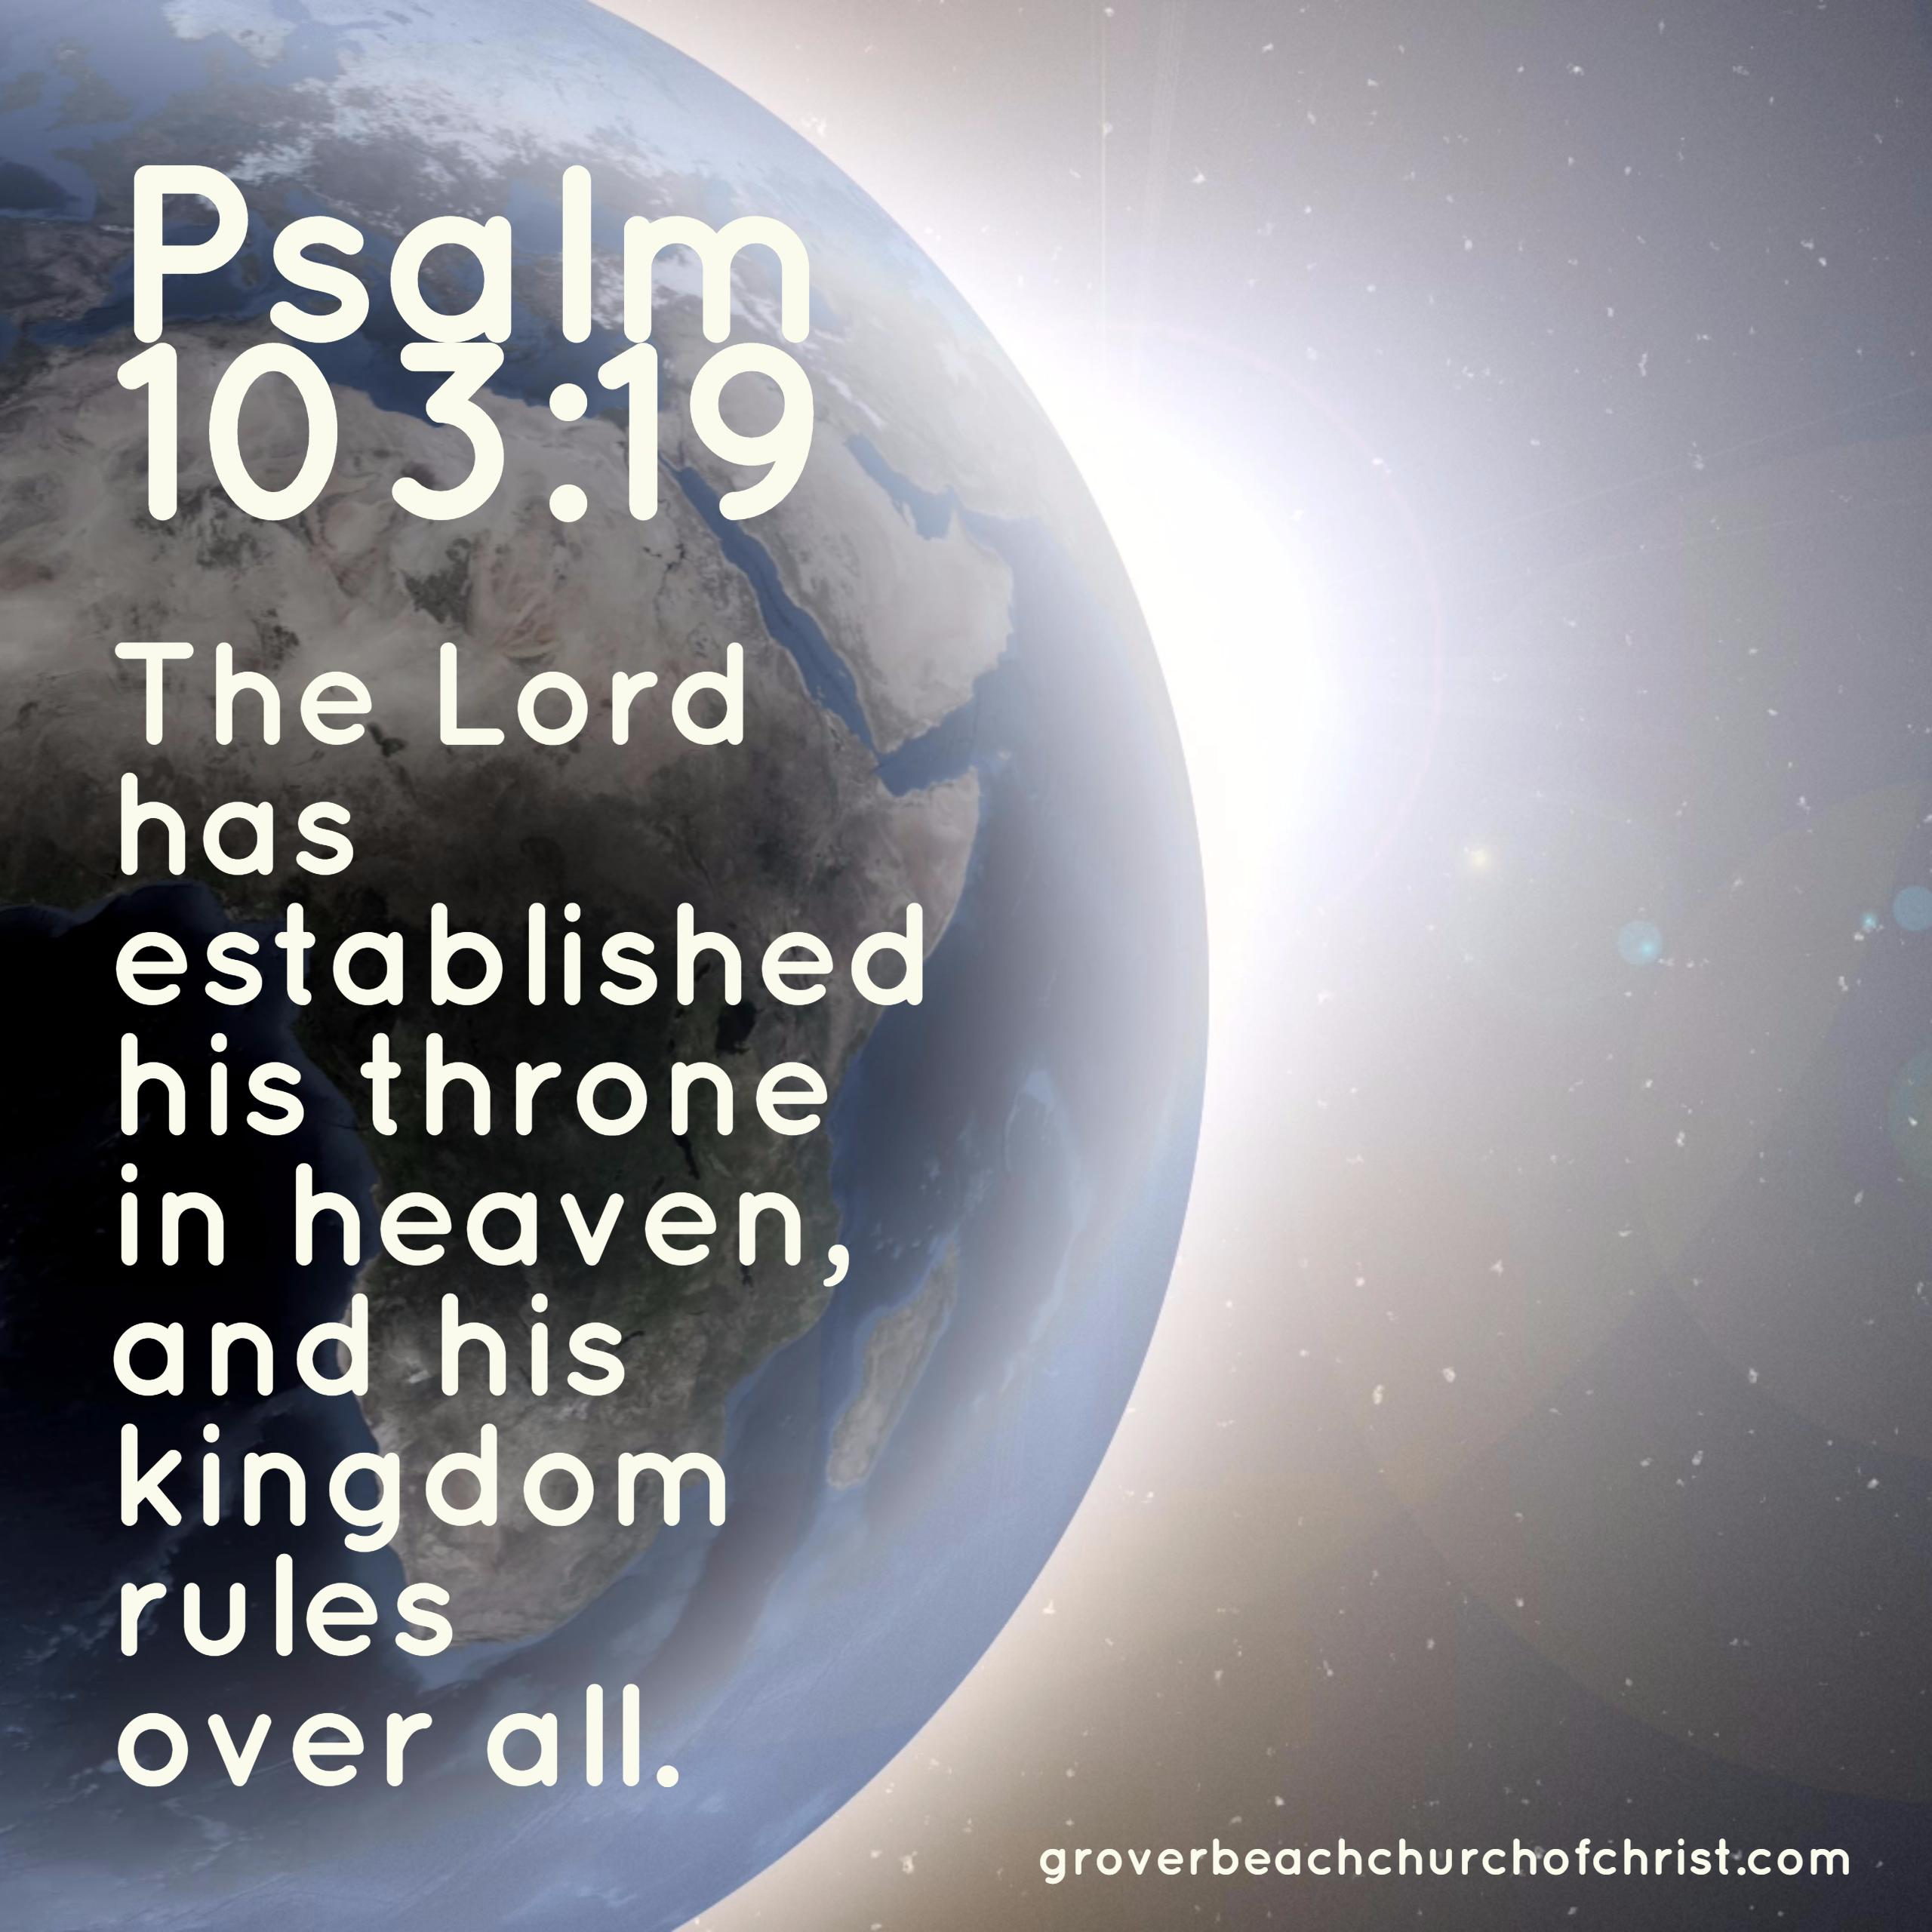 Psalm 103:19 The Lord has established